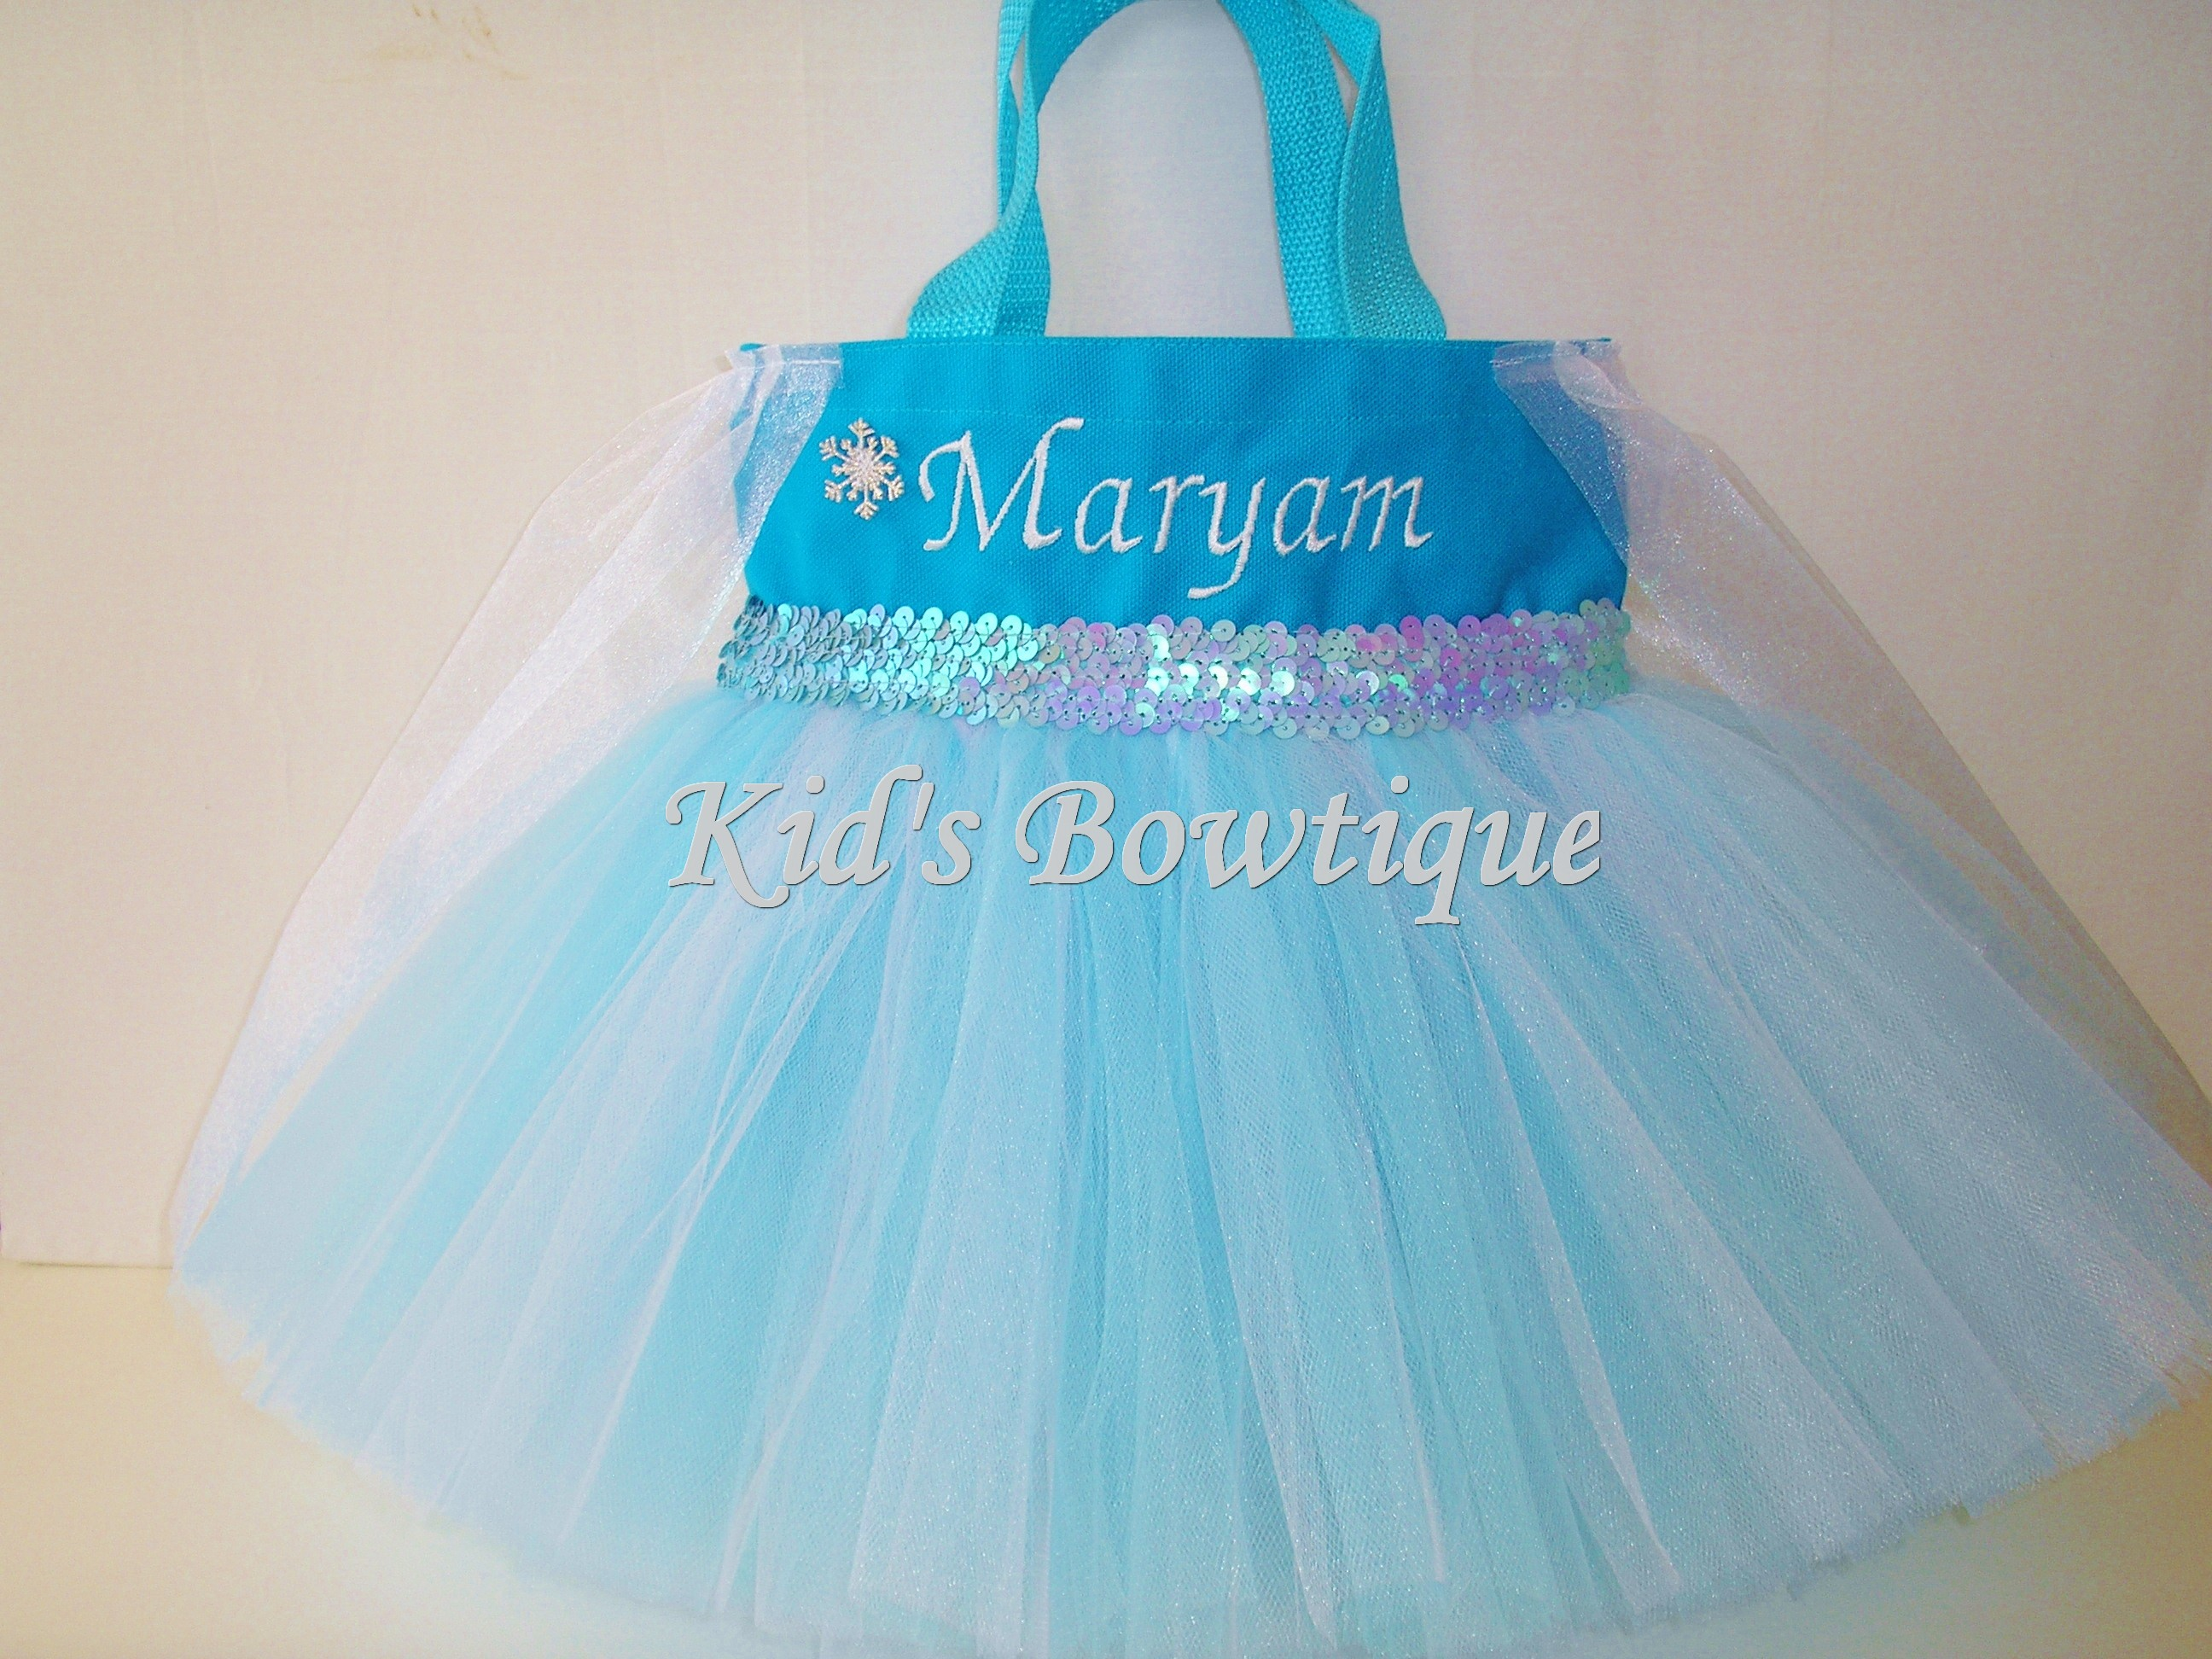 Princess Tutu Bag - ItemPTB11 Snowflake Princess with Blue/White Tutu and Sheer Drape